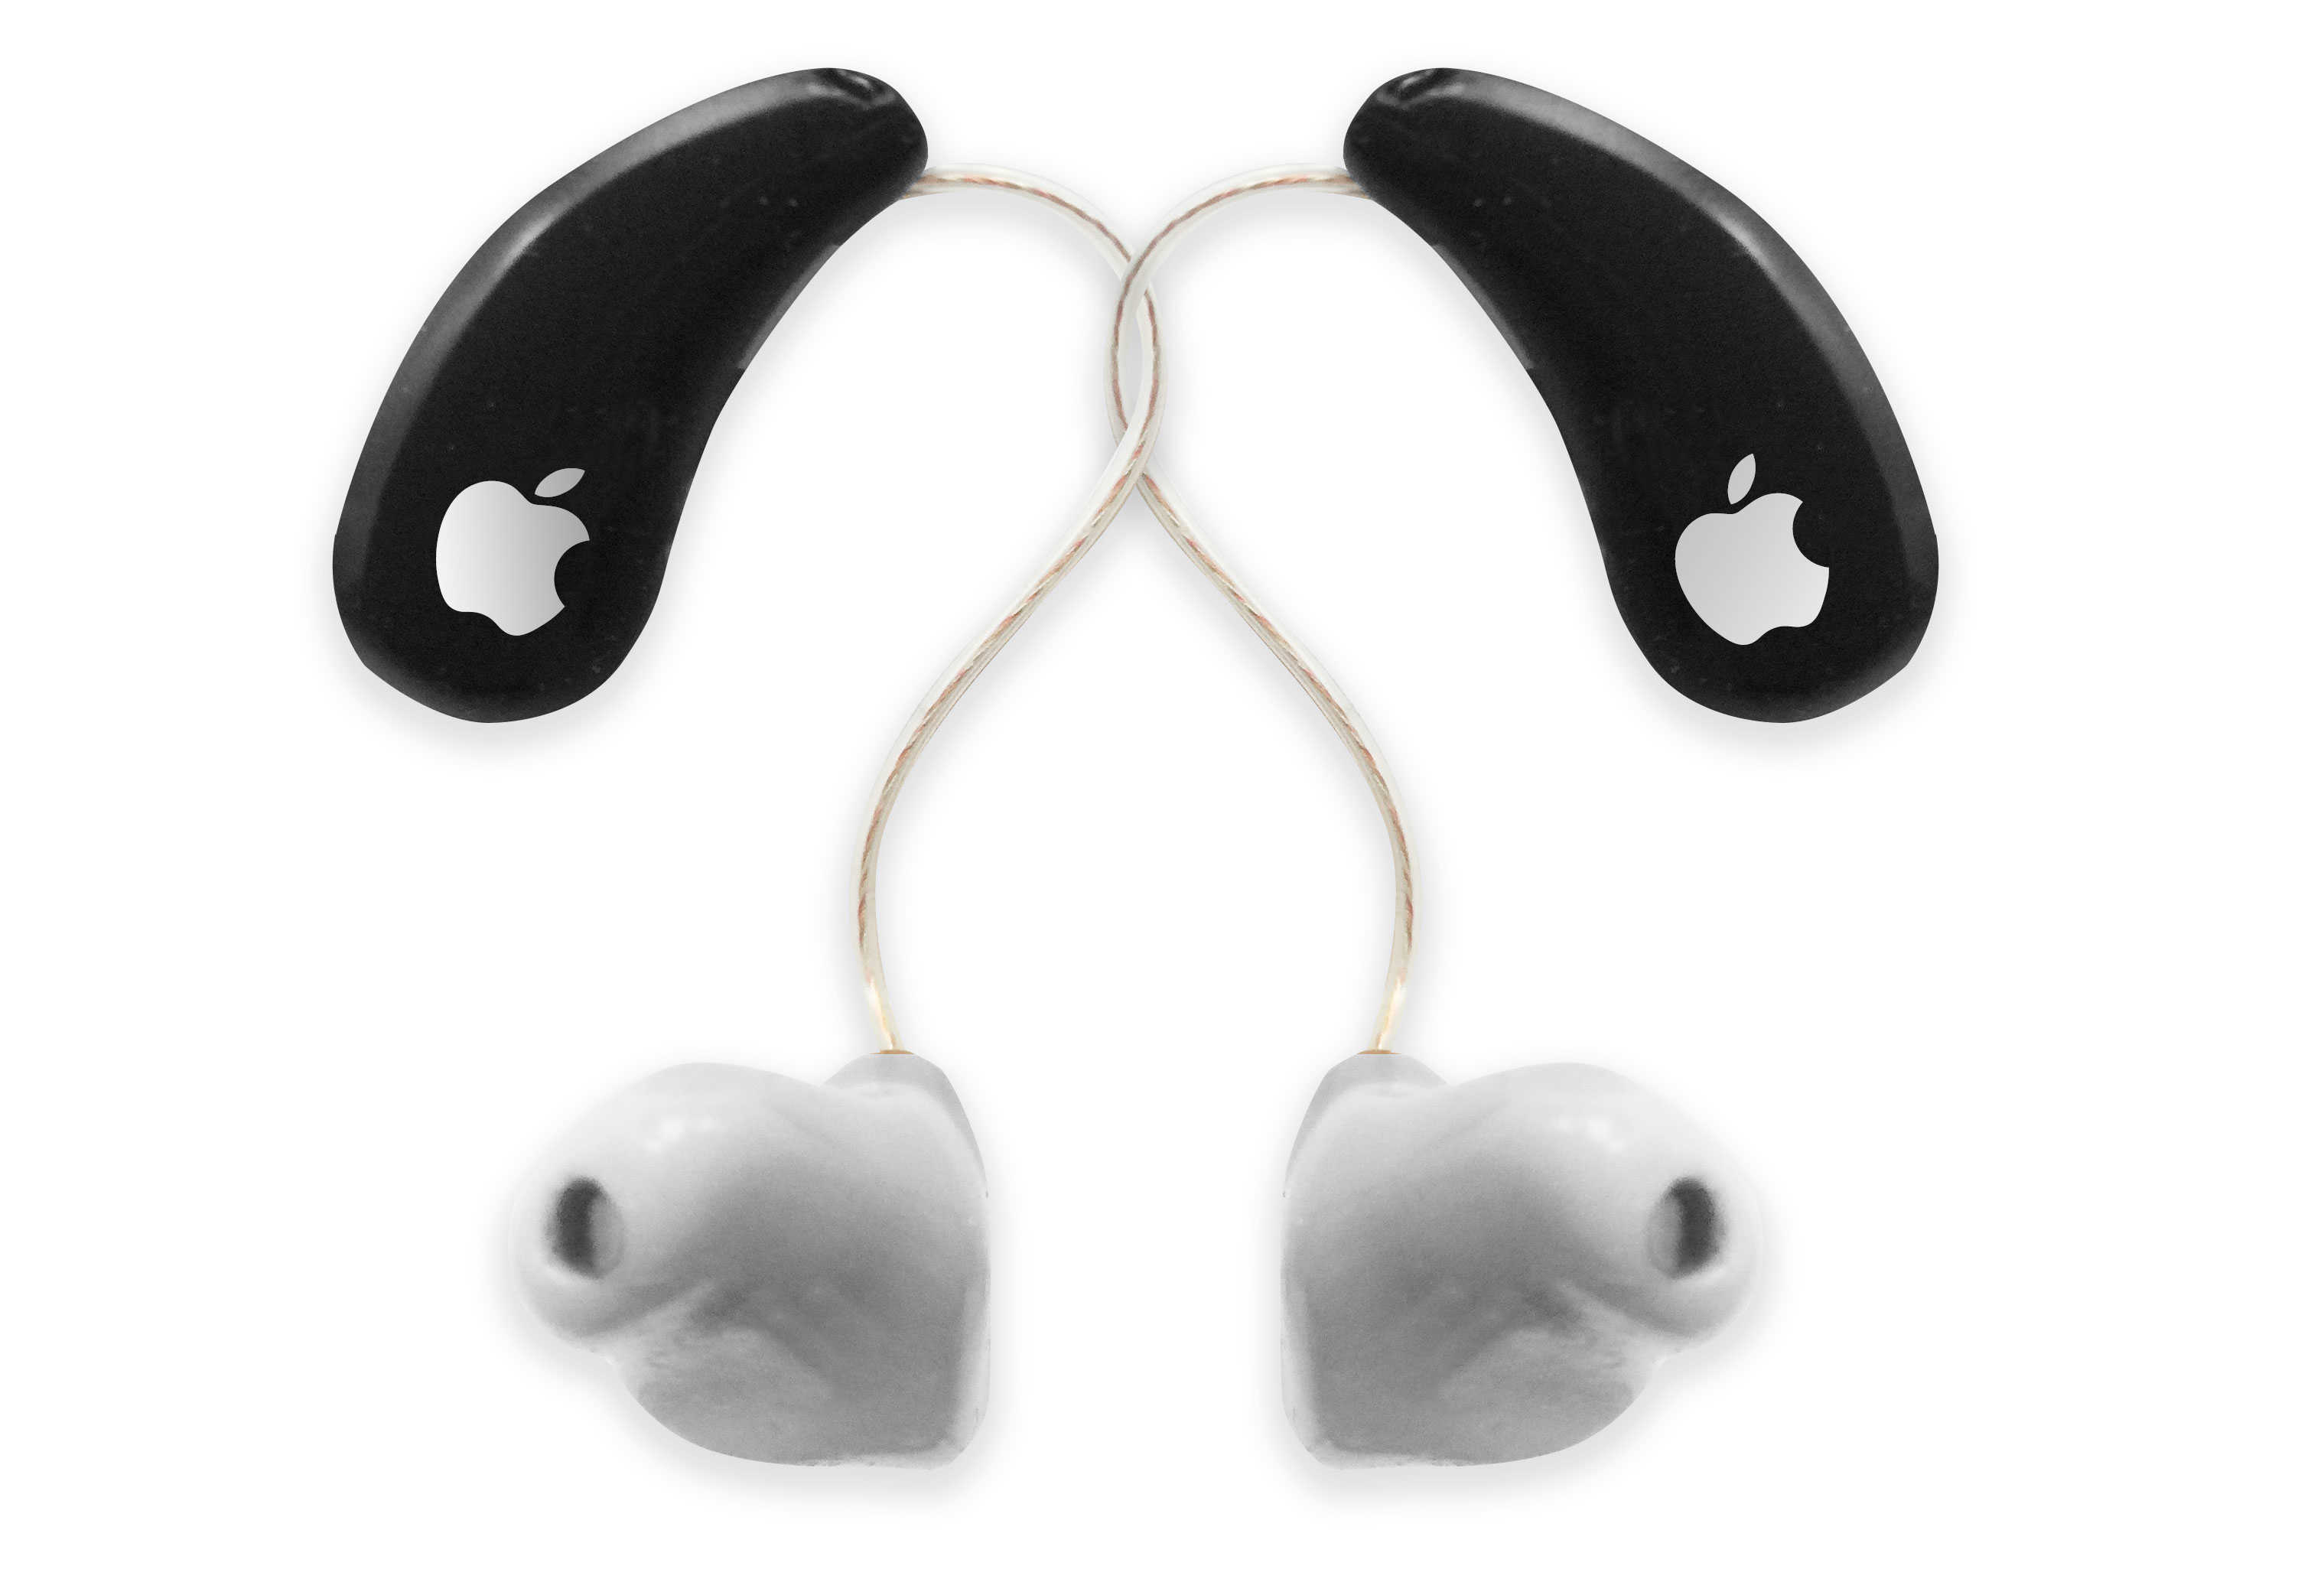 OK, I admit, these are just regular hearing aids with an Apple logo stuck on them. I'm sure Jonathan Ive and his team would come up with something way better.